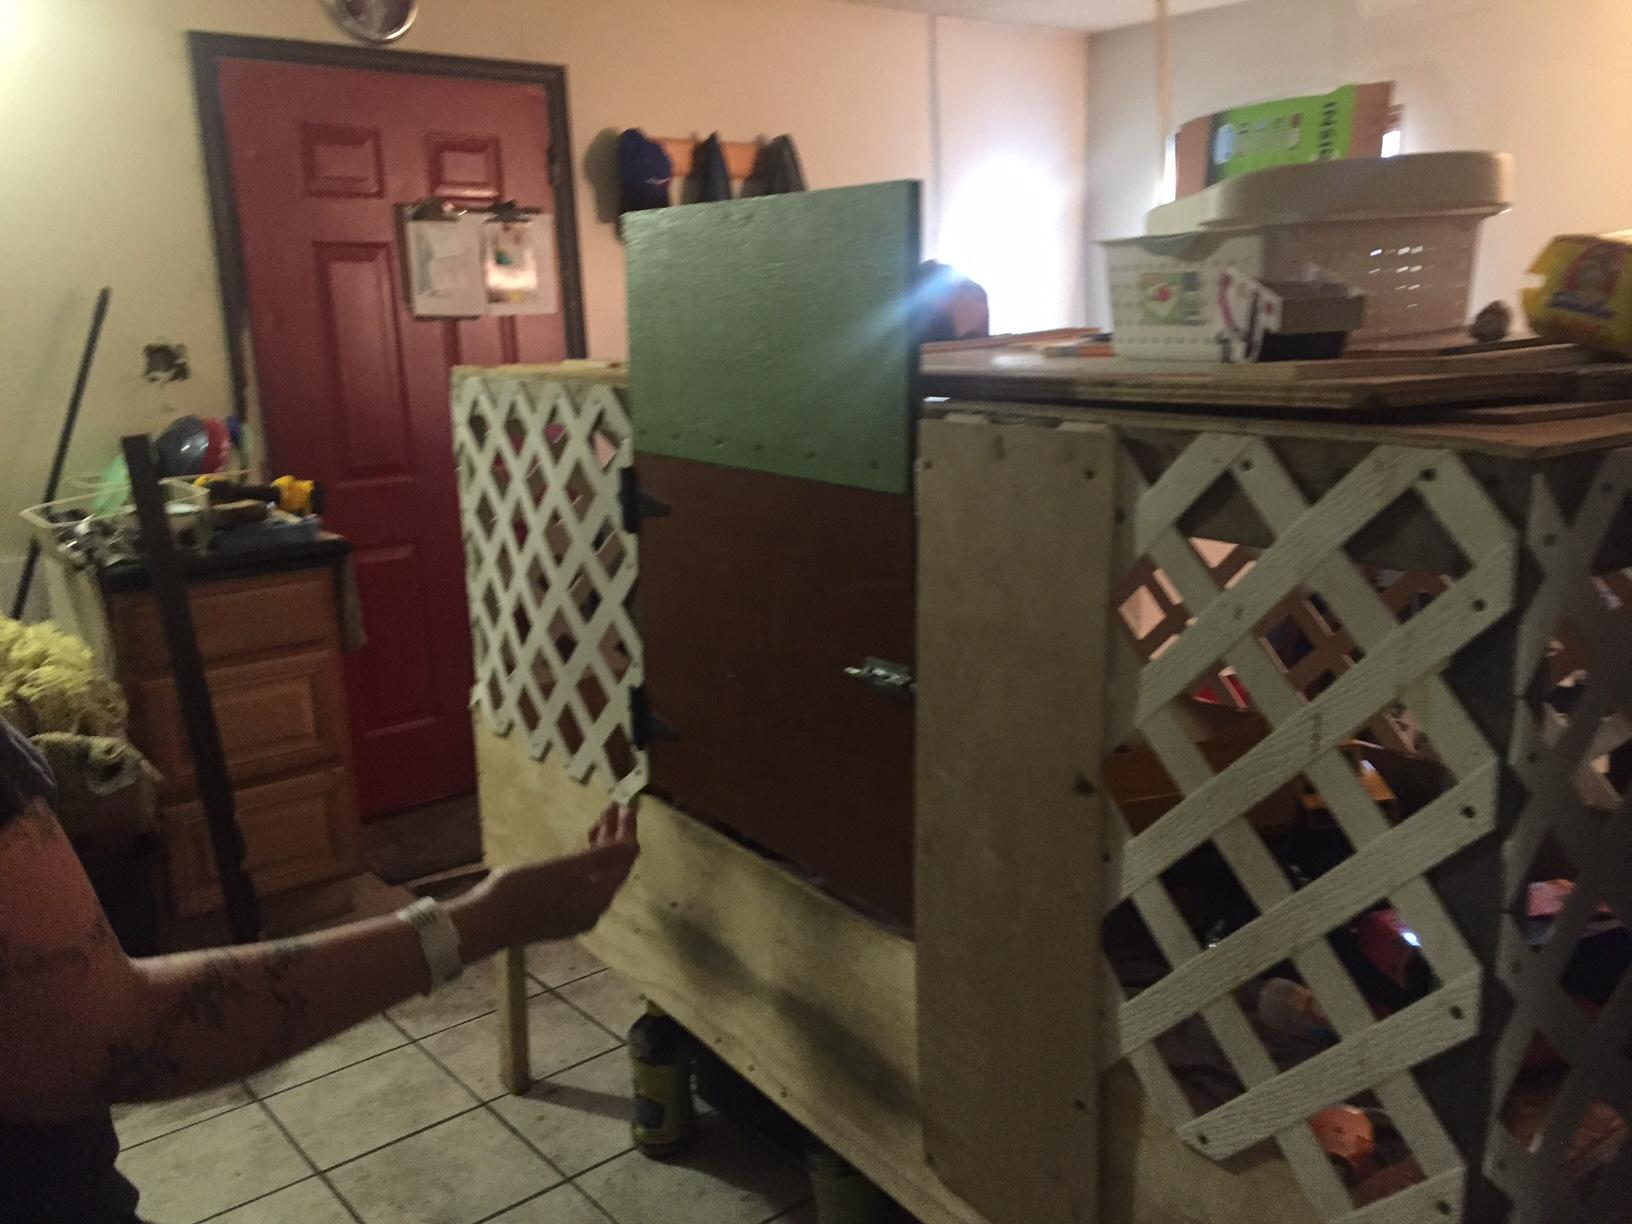 Dad leaves 1-day-old baby home alone with toddler locked in 'homemade' cage, police say